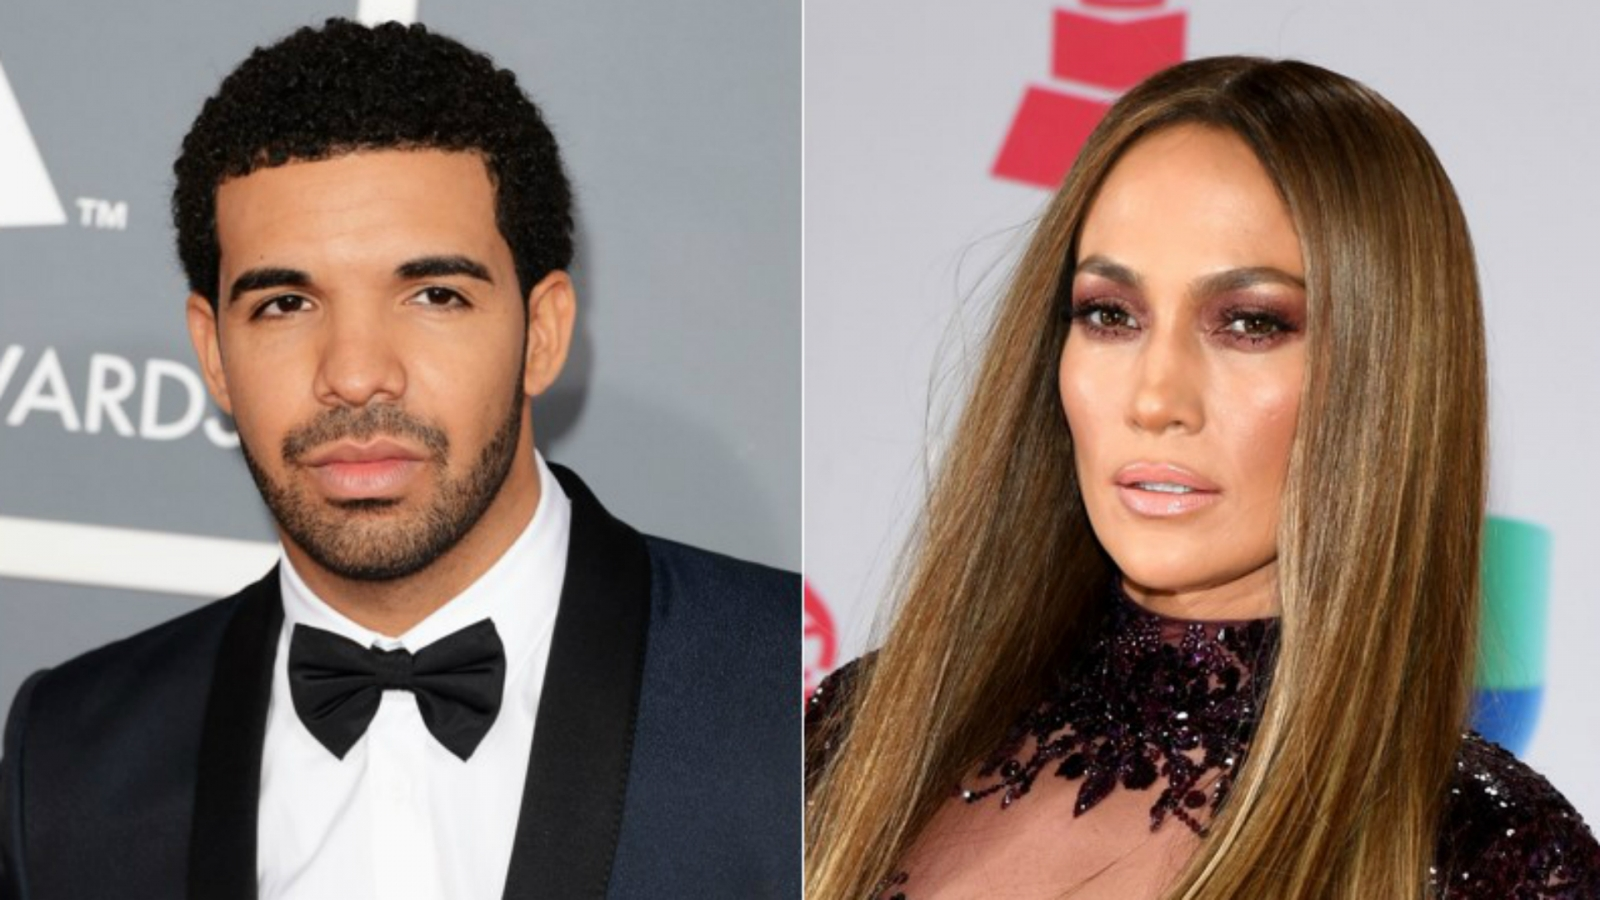 jennifer lopez dating life Jennifer lopez's life may look glamorous, but it's not always so picture-perfect since 1997, lopez has been married to three different men (and engaged to one more.